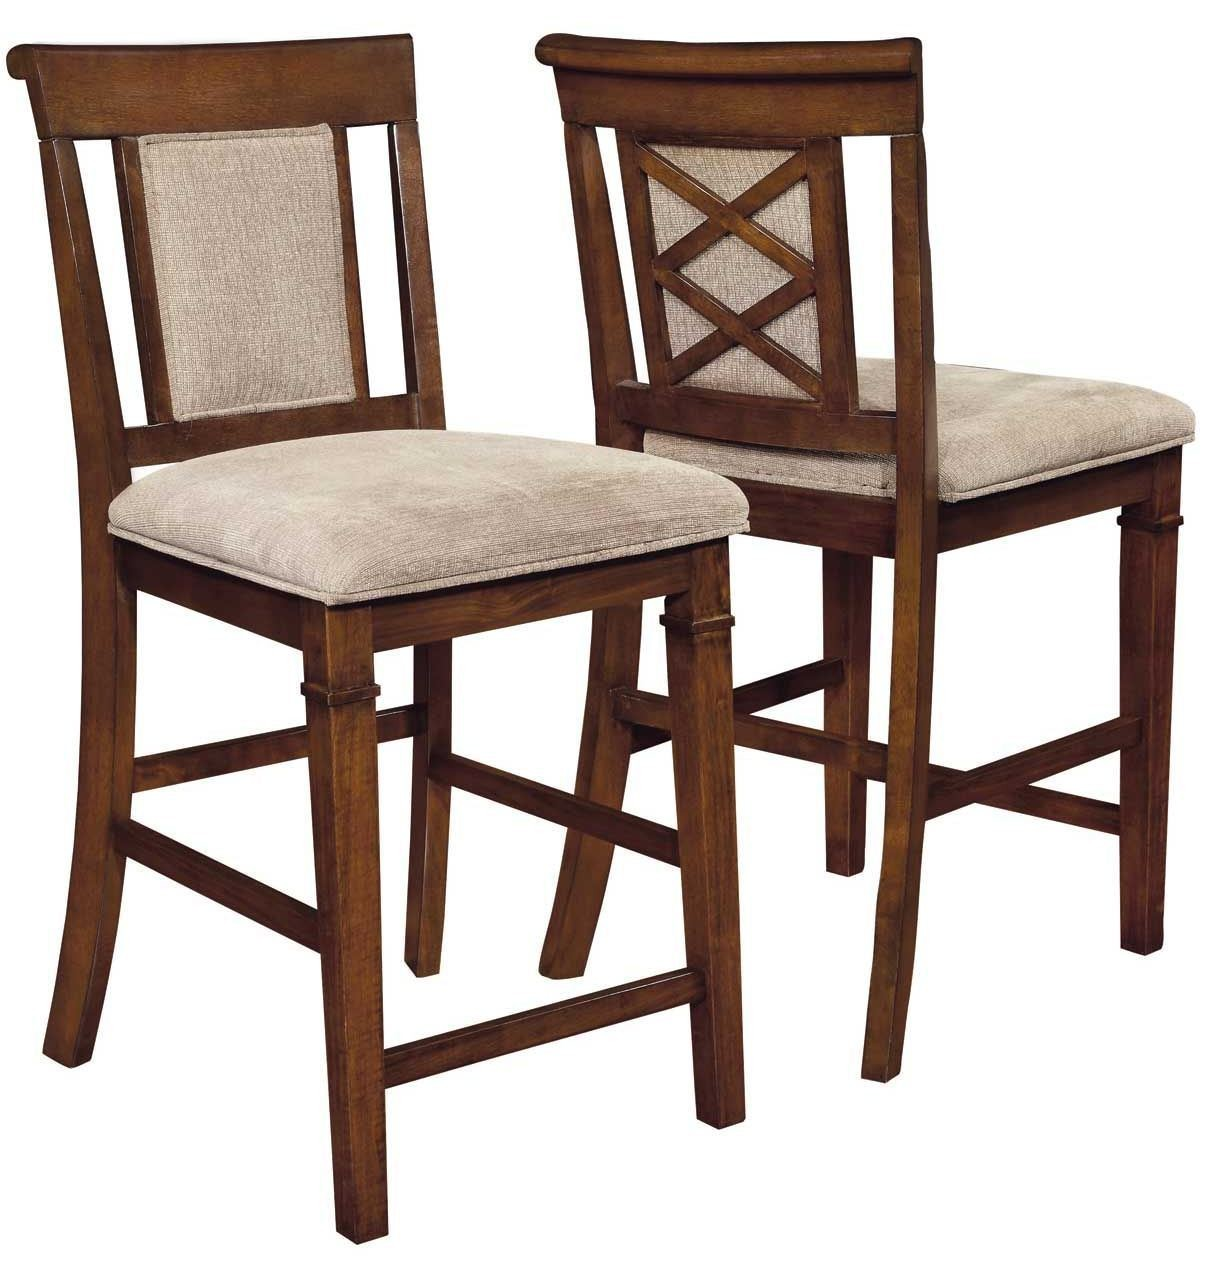 Pembrook Upholstered Counter Height Stool Set of 2 from Coaster ...